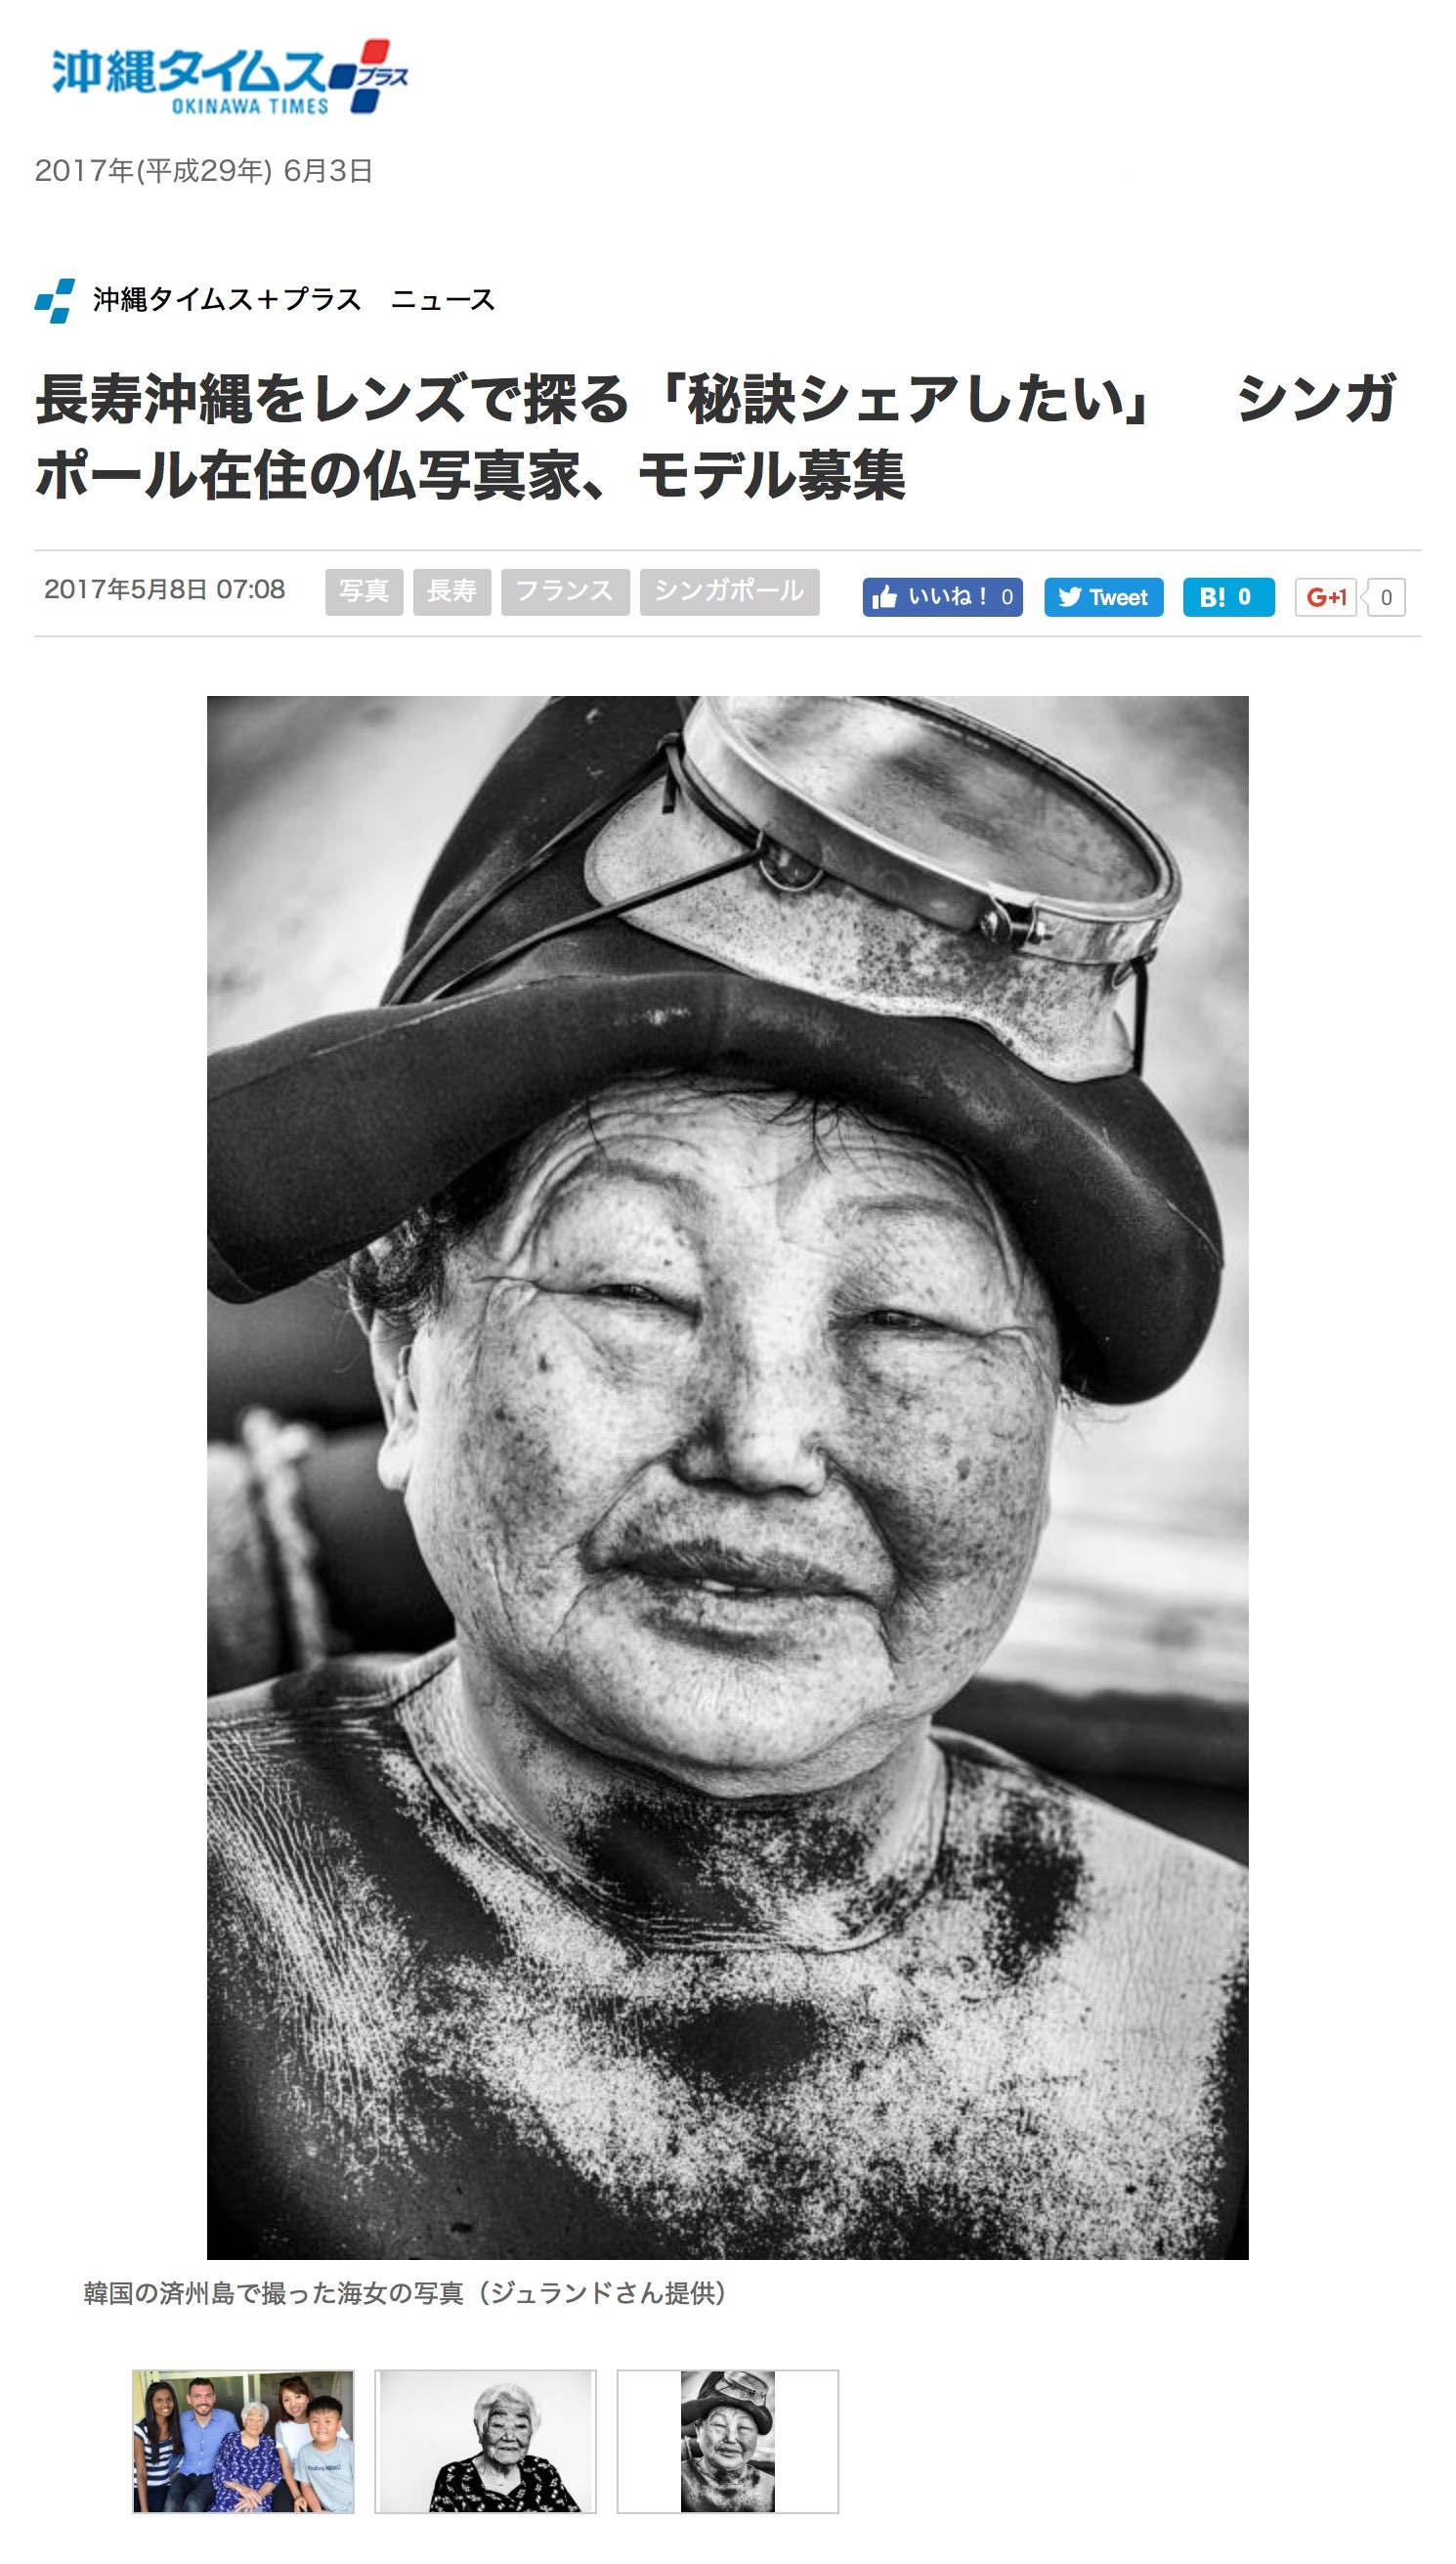 Okinawa Times web - Jose Jeuland Newspaper - Japan Photography Project